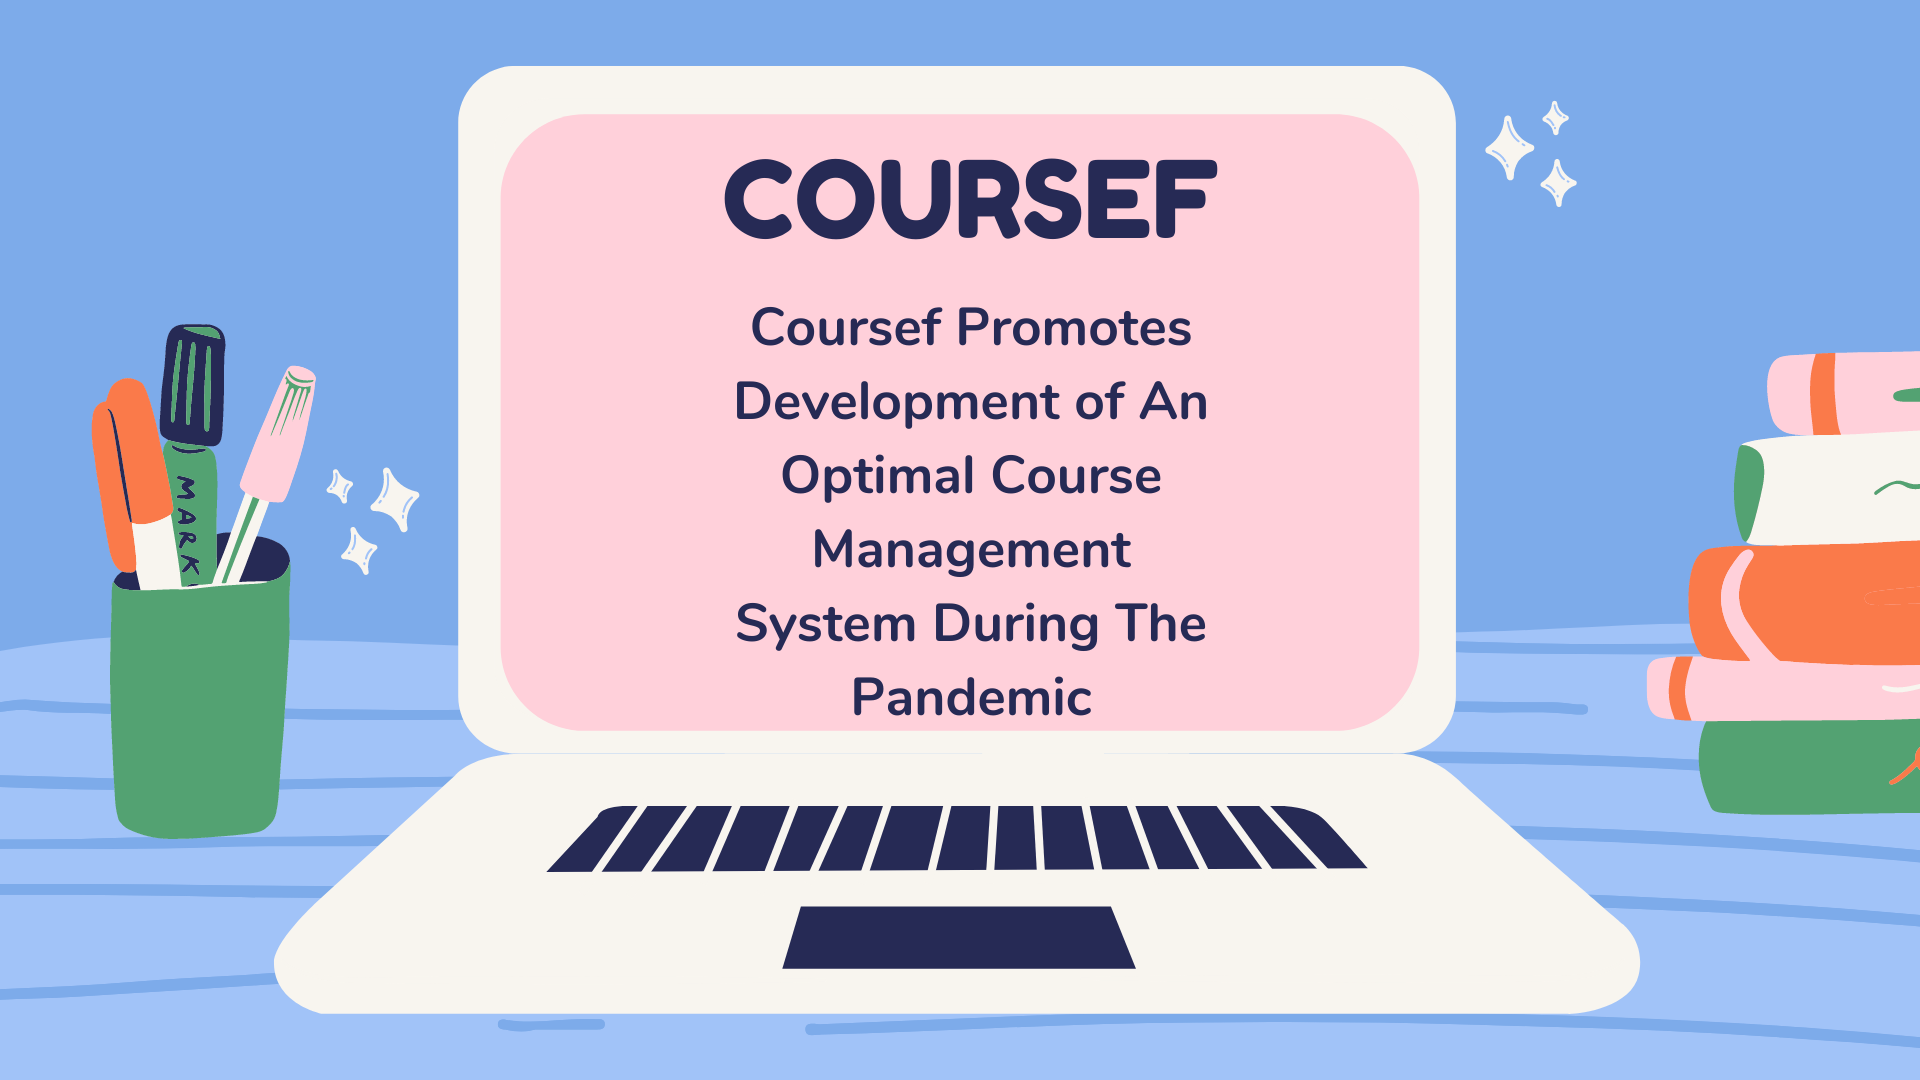 Coursef Promotes Development of An Optimal Course Management System During The Pandemic